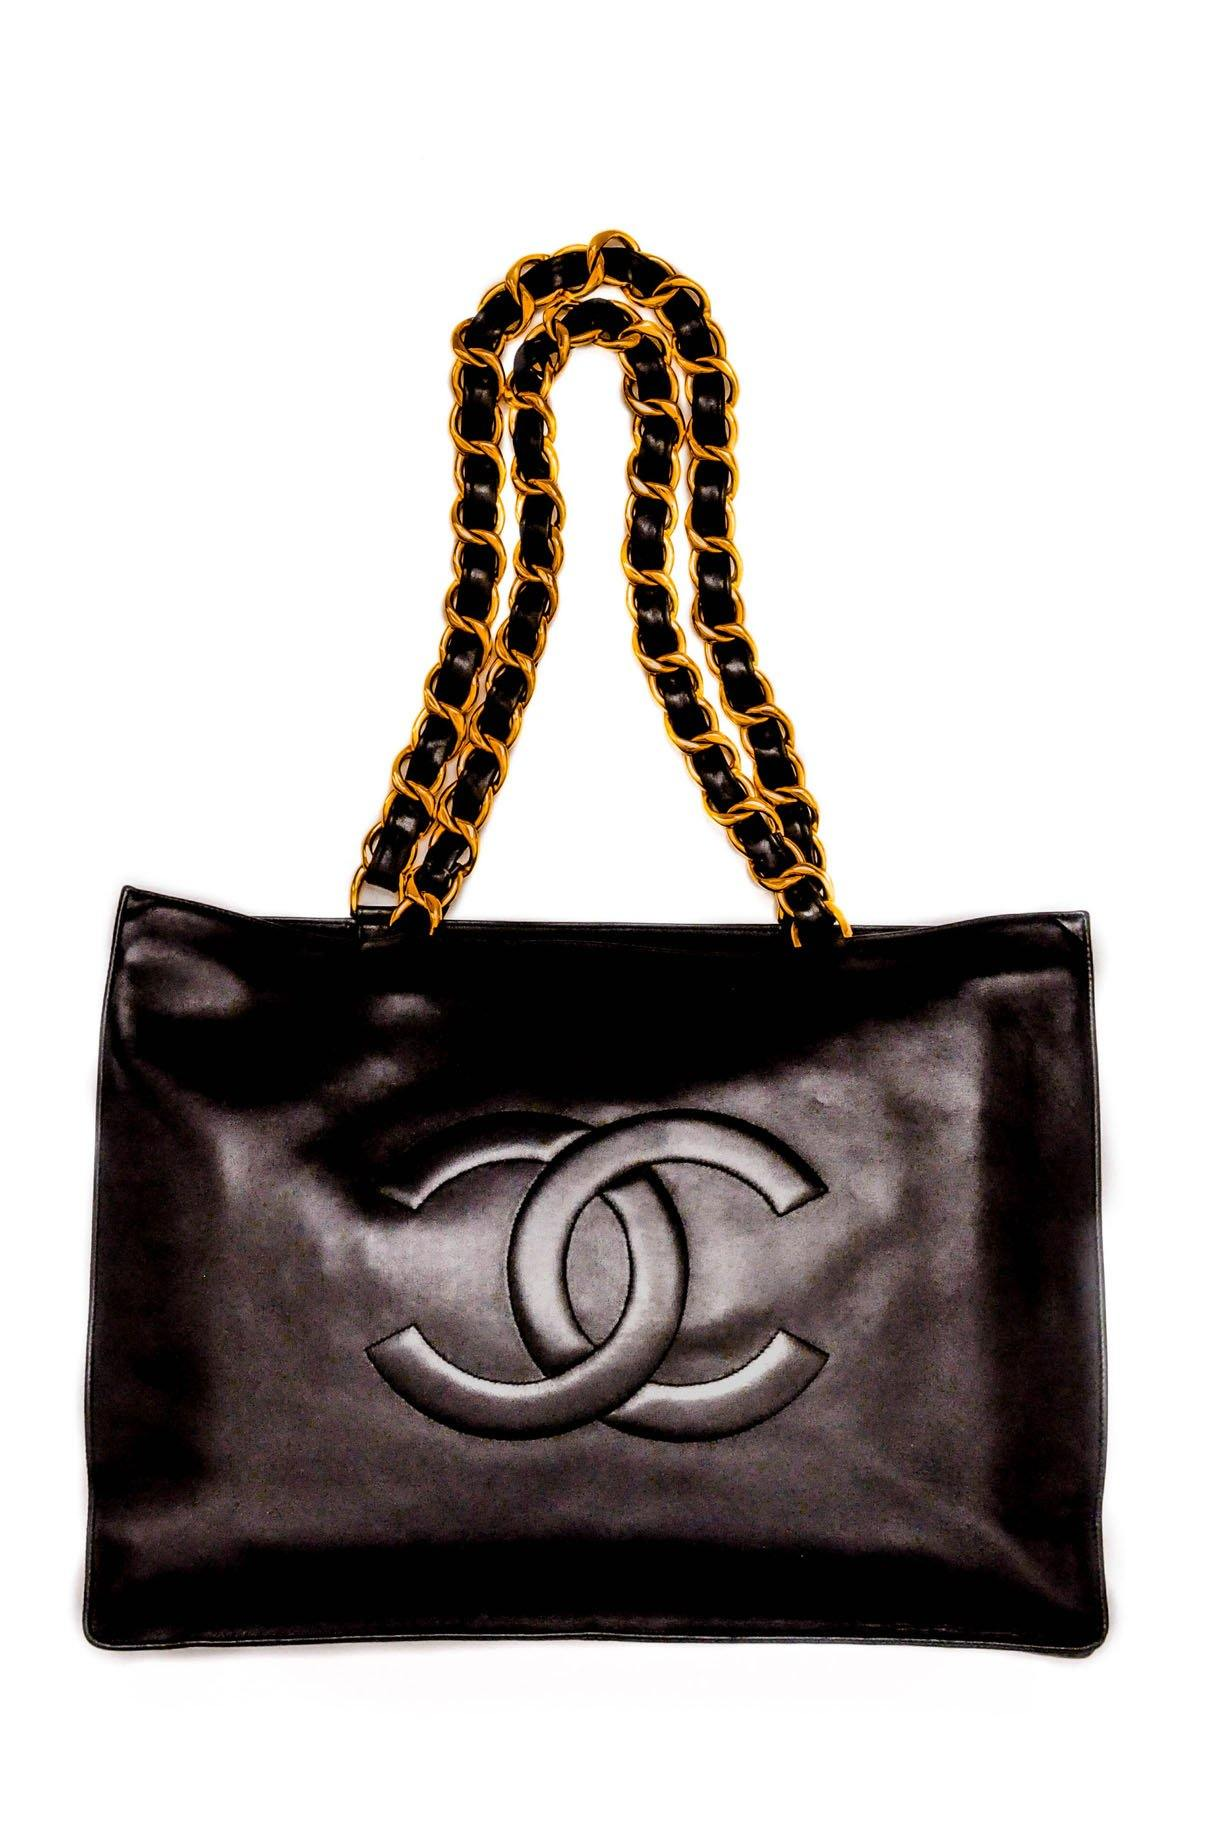 Vintage Chanel Jumbo Tote Bag from Sweet and Spark